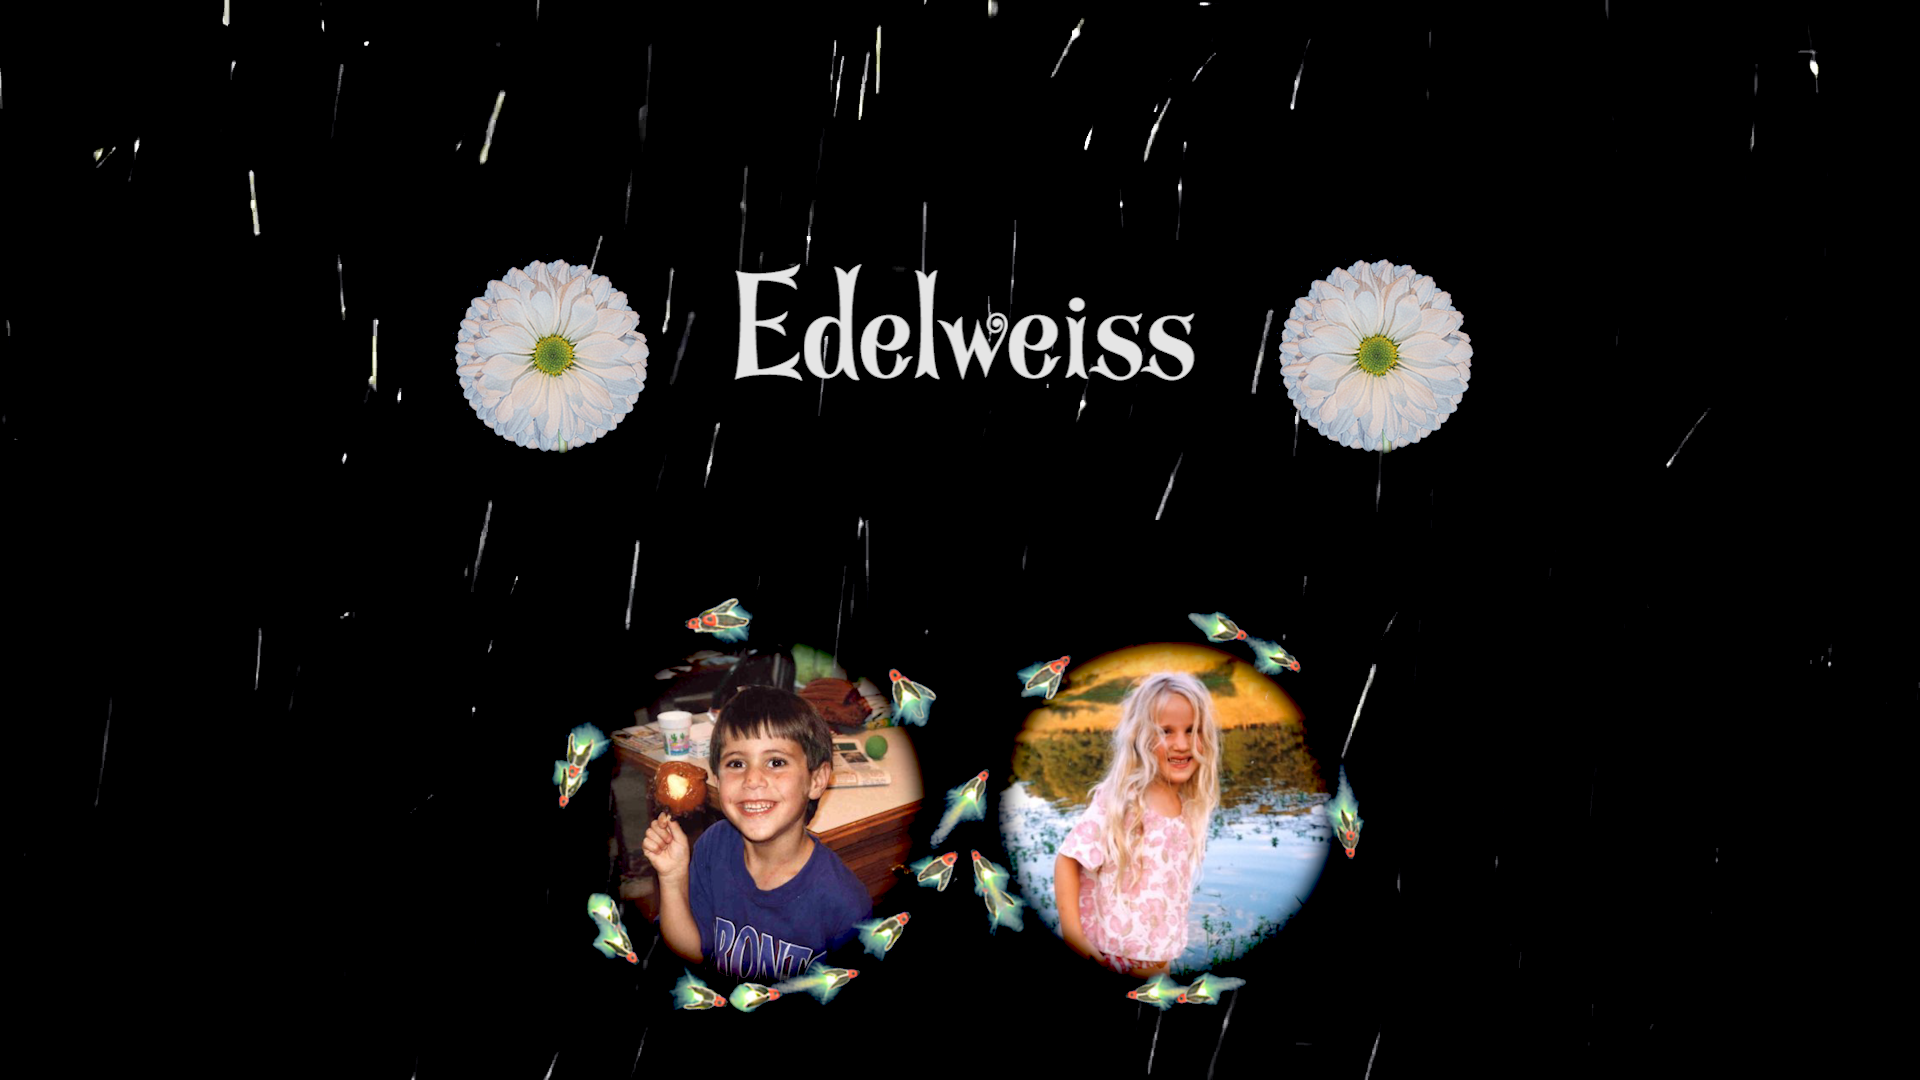 Edelweiss Music Video (Spanish Version)!